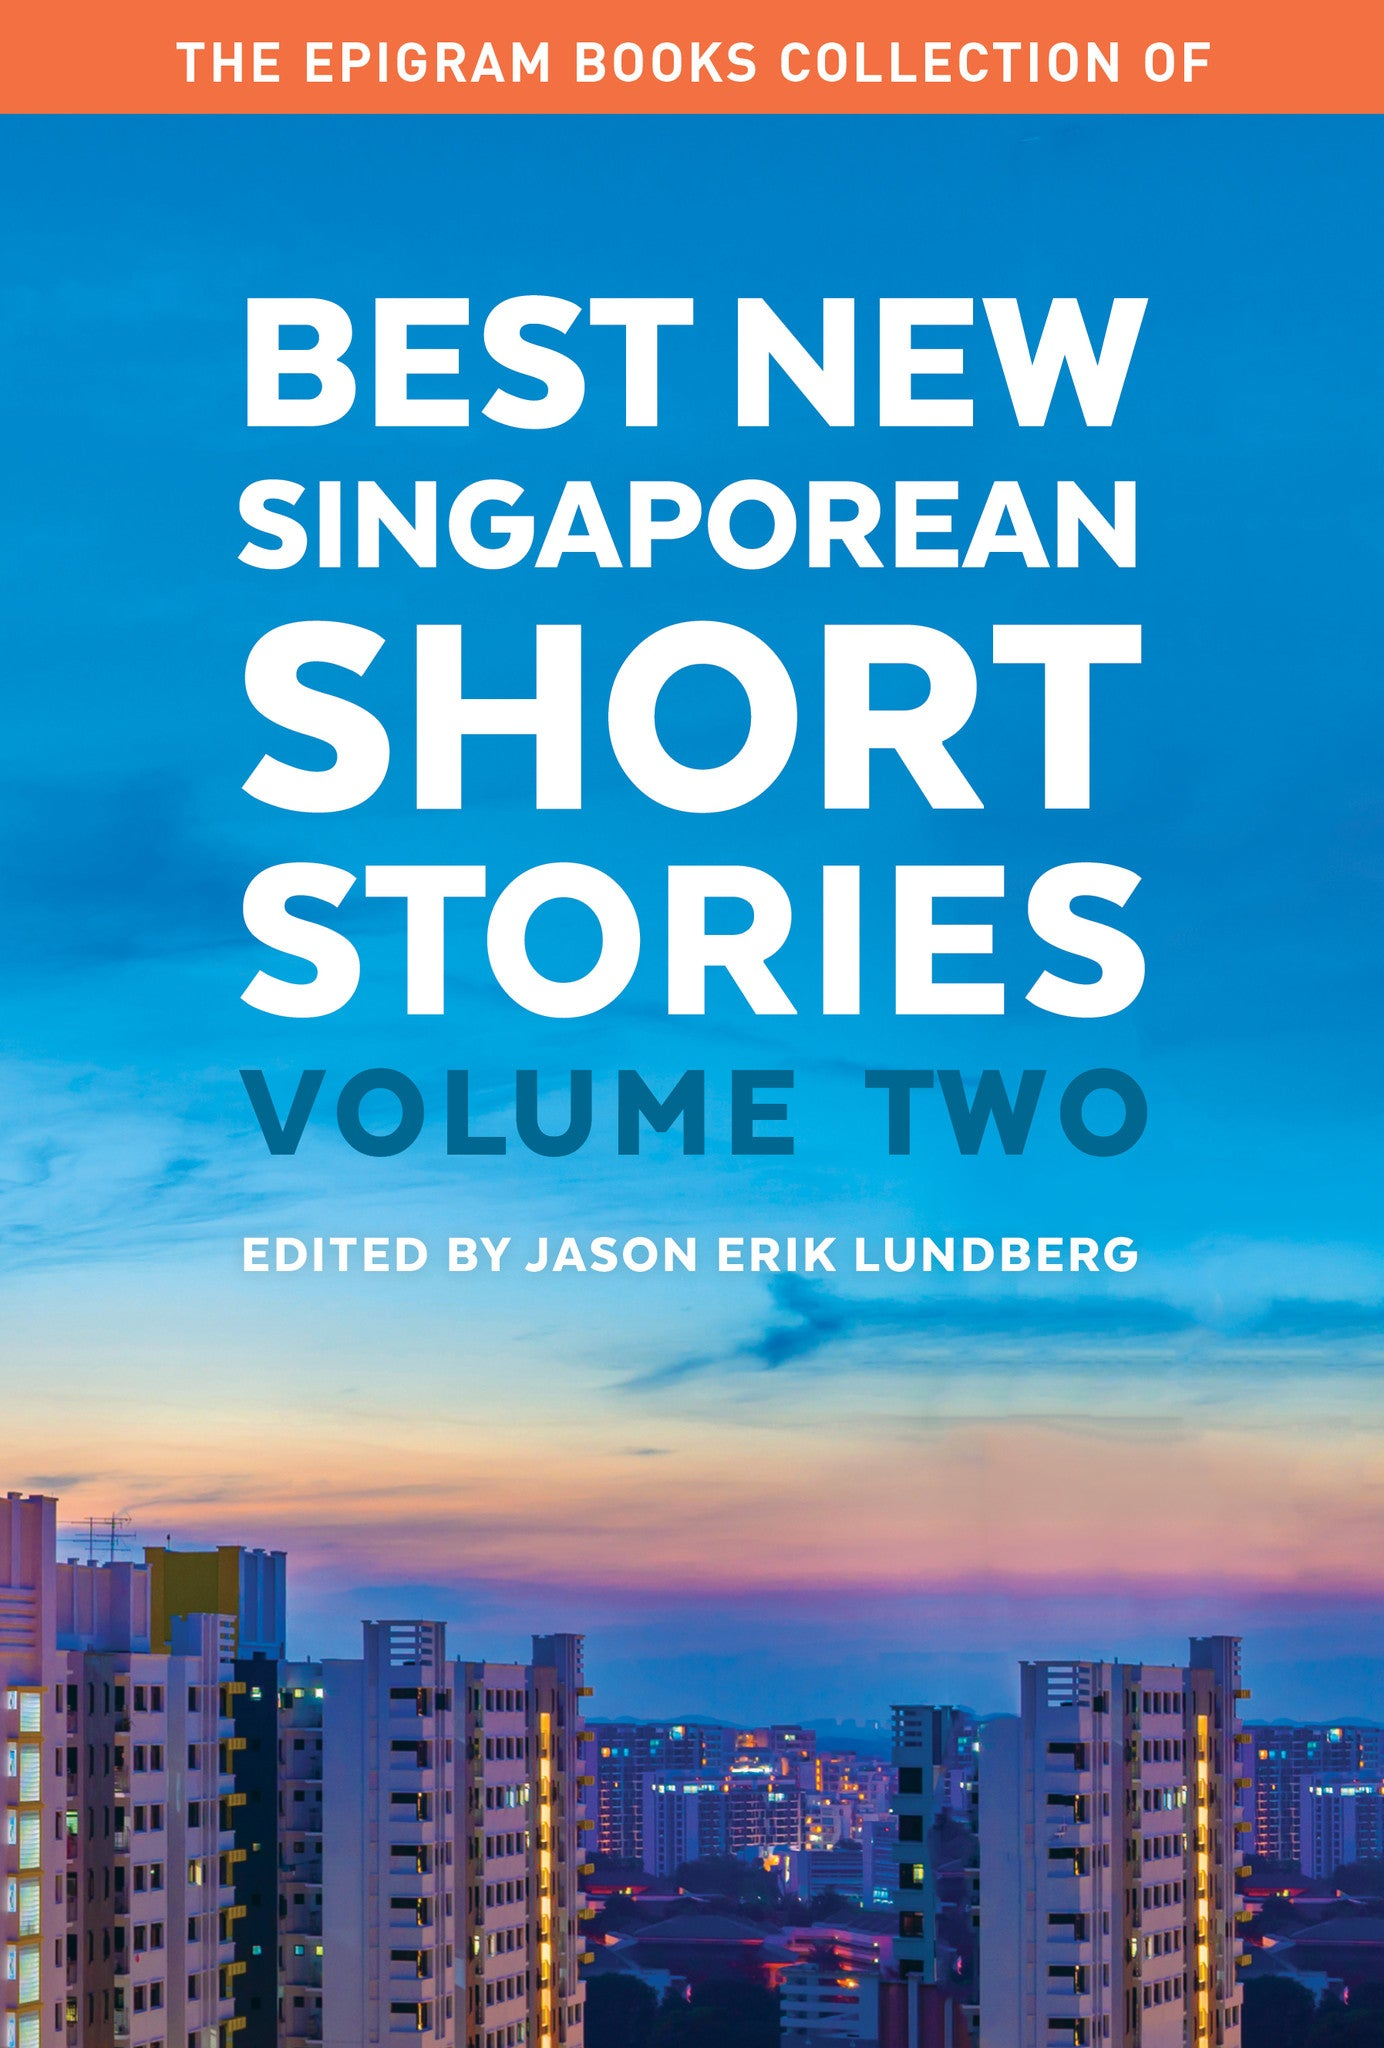 The Epigram Books Collection of Best New Singaporean Short Stories: Volume Two